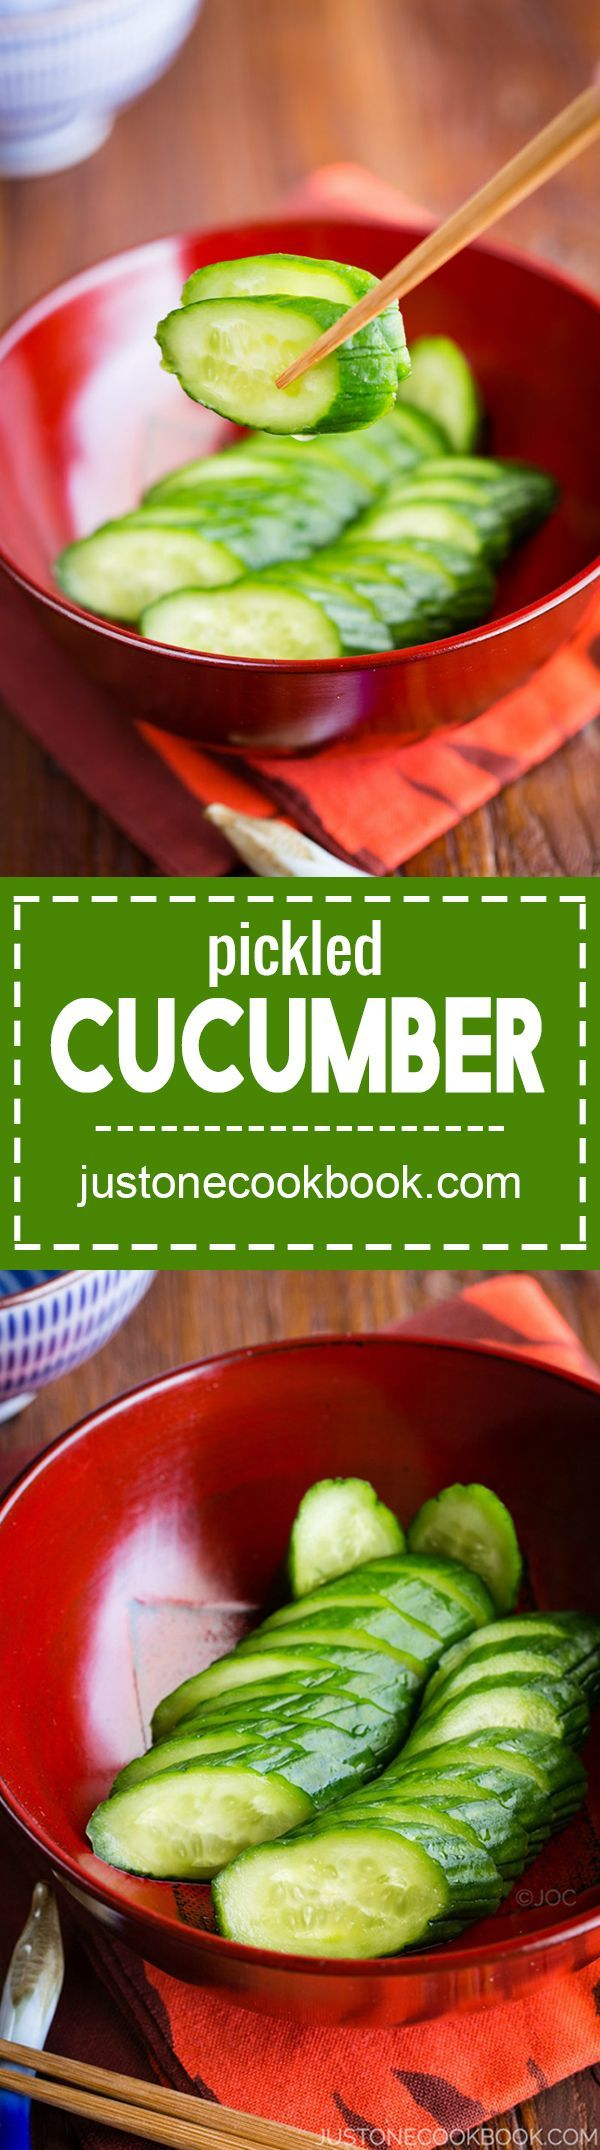 Pickled Cucumber (きゅうりの浅漬け) | Easy Japanese Recipes at JustOneCookbook.com